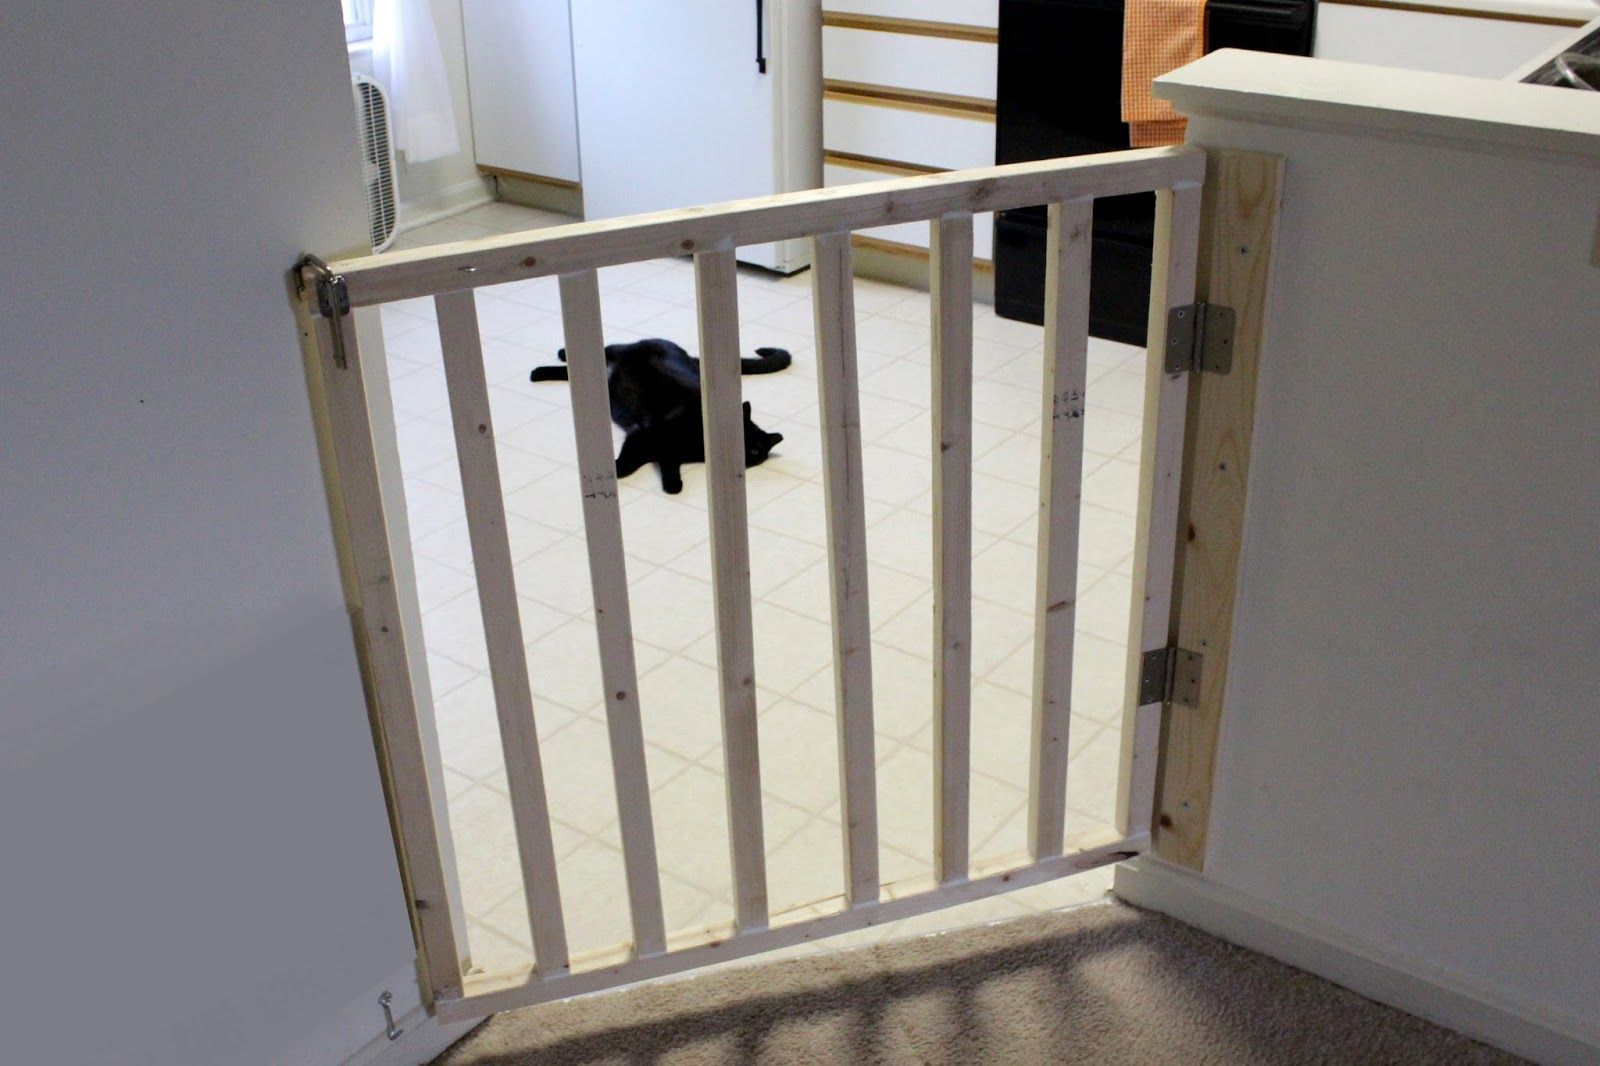 Angled Dog Gate Diy Wall Decor For Bedroom Diy Baby Gate House Warming Gift Diy